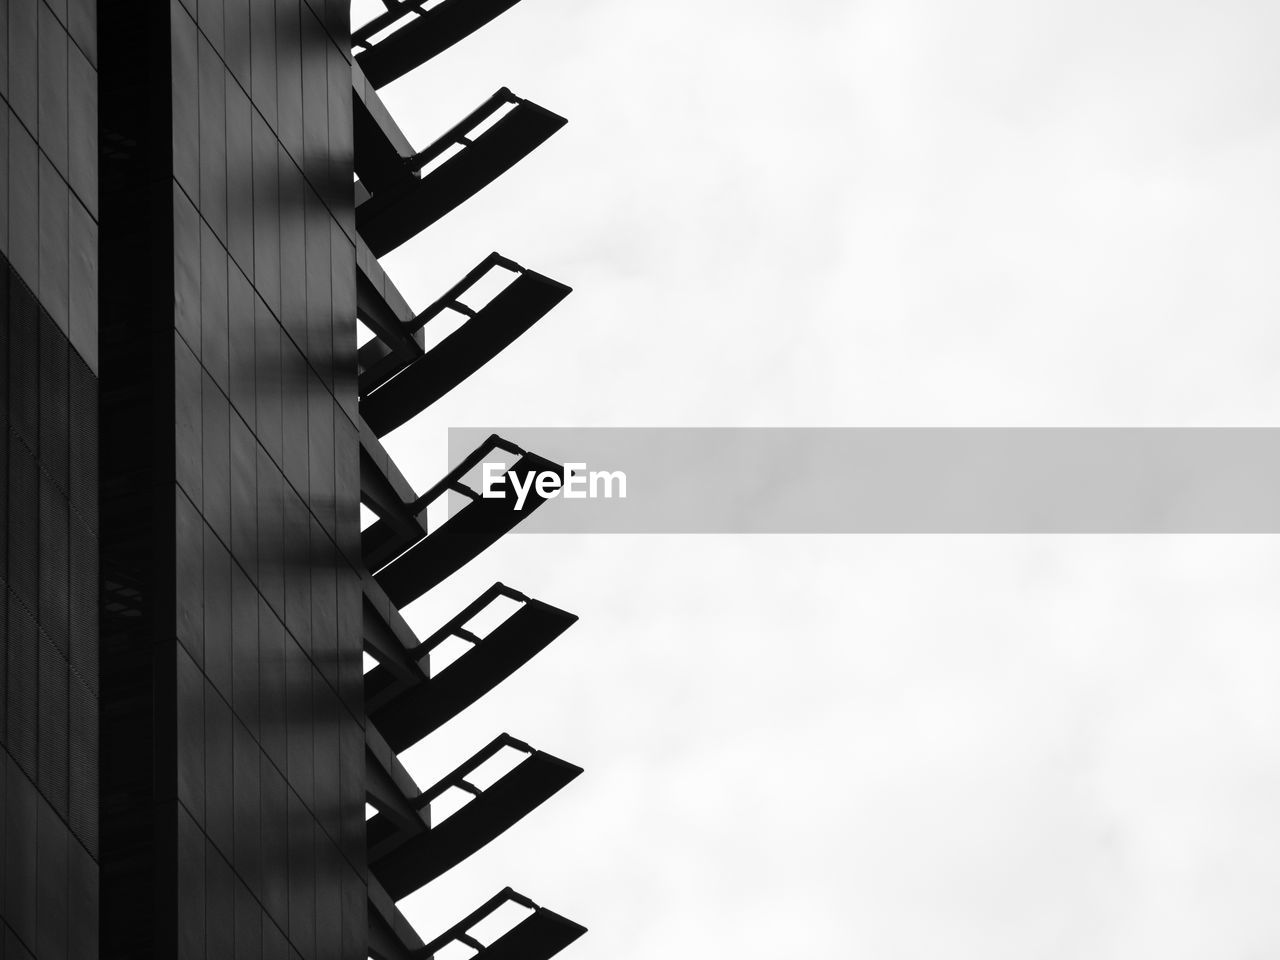 architecture, built structure, sky, low angle view, building, building exterior, no people, day, nature, copy space, outdoors, staircase, communication, steps and staircases, clear sky, pattern, text, wall - building feature, modern, sign, skyscraper